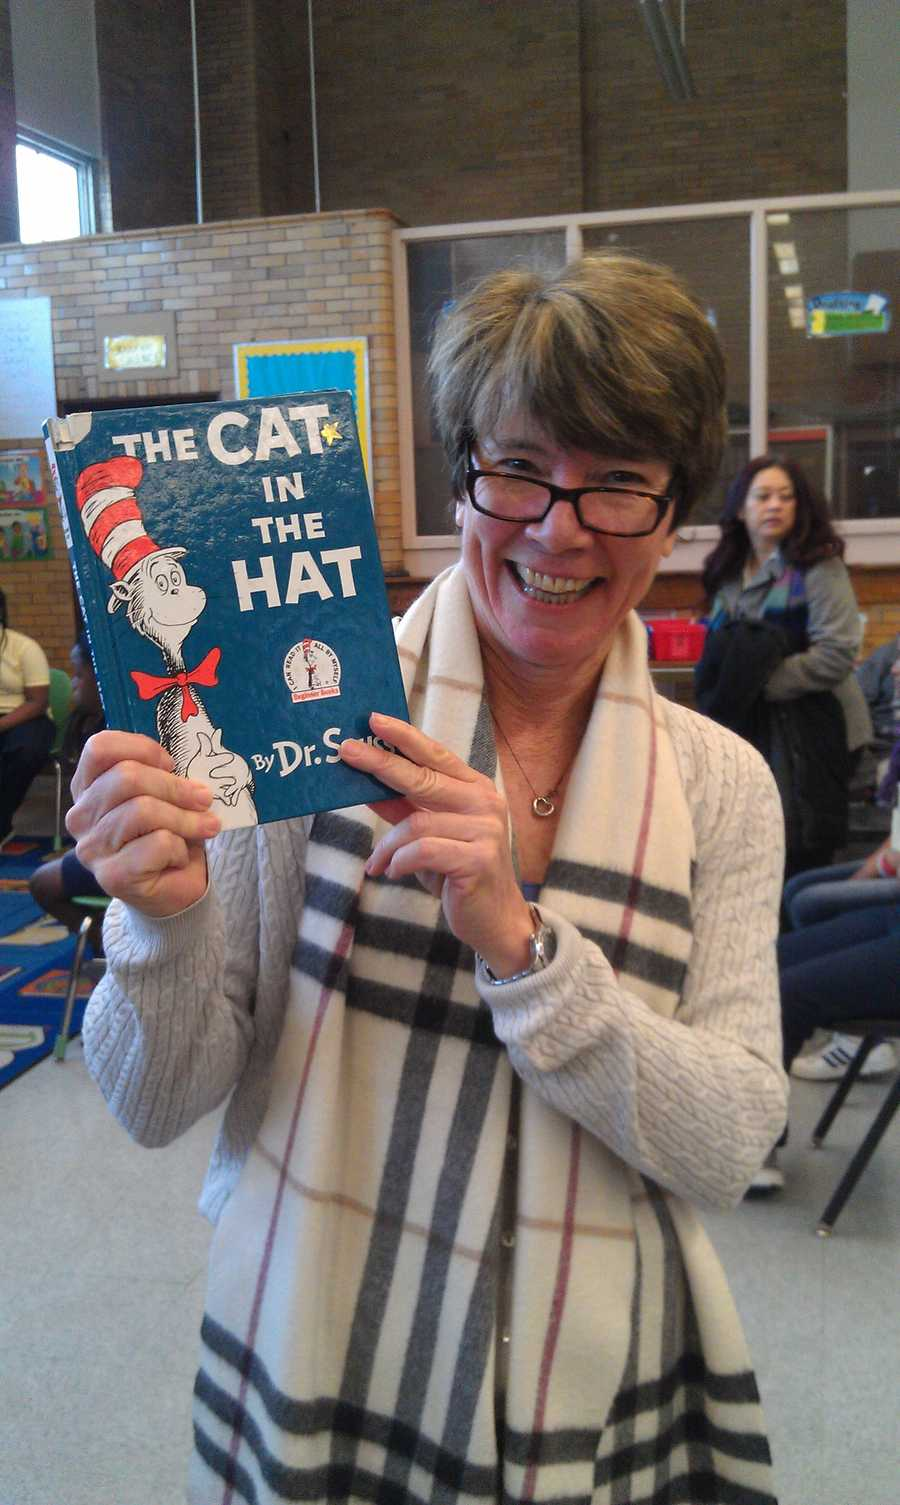 I-Team lead investigative reporter Jayne Miller joins the Baltimore community and others across America to read to schoolchildren Friday as part of Read Across America Day.